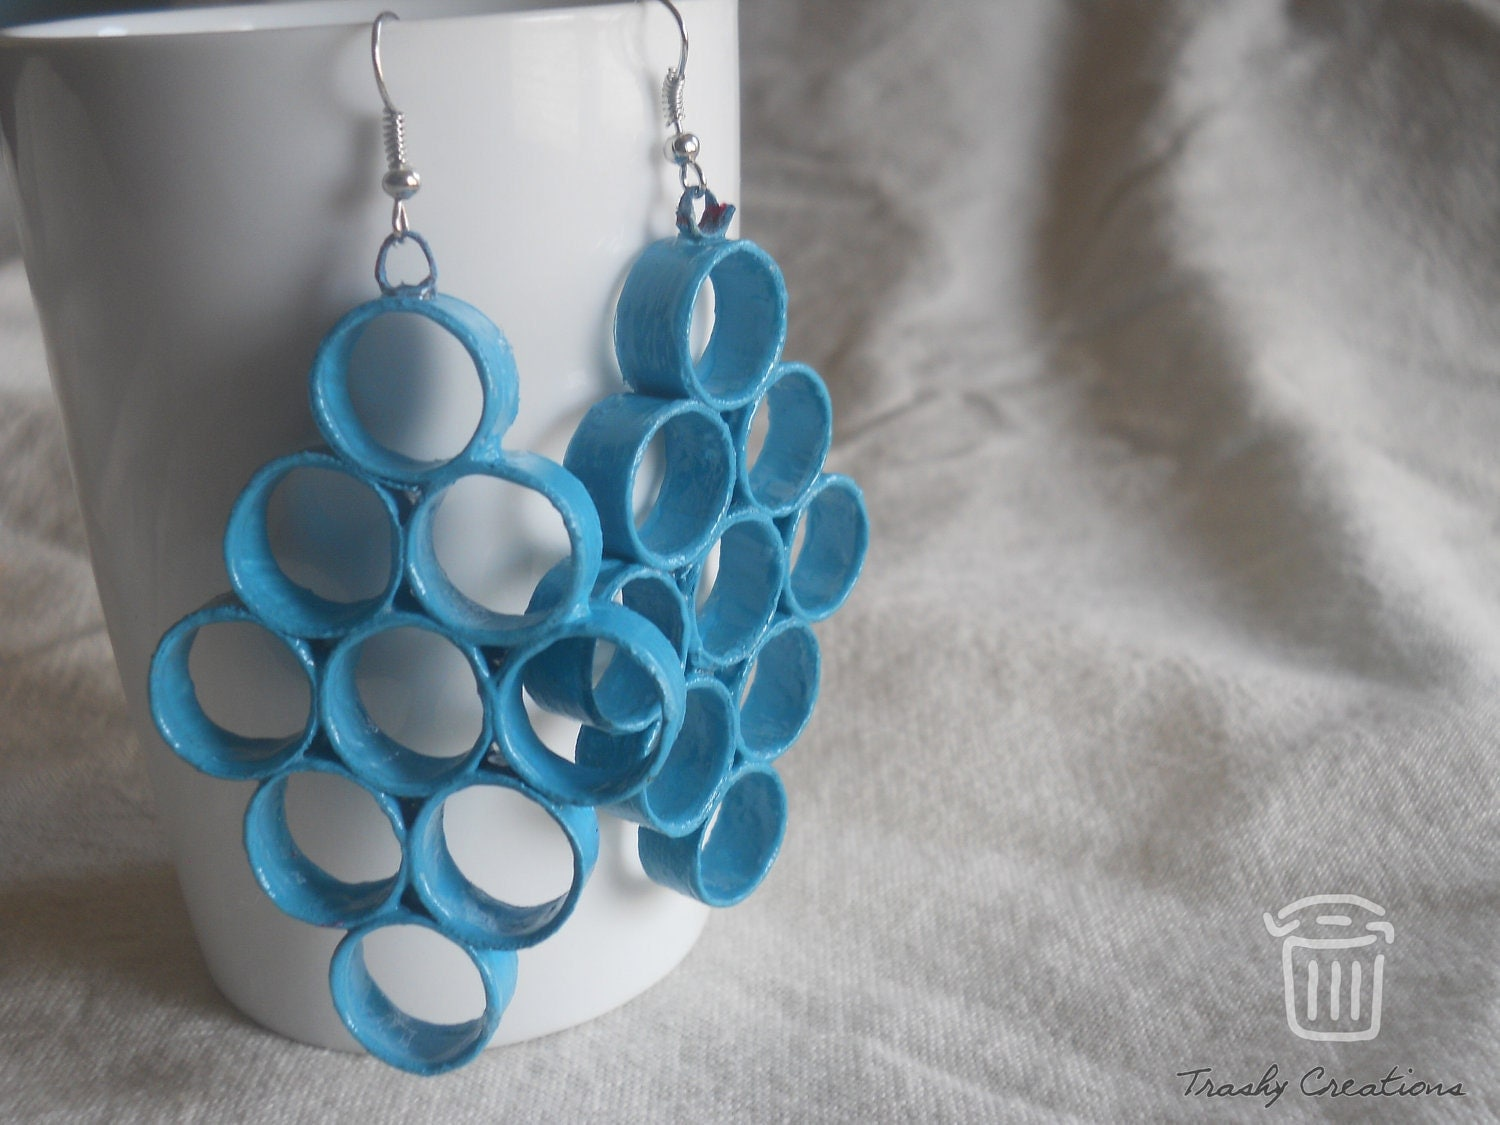 9 ring paper earring by Trashy Creations on Upcycle Fever